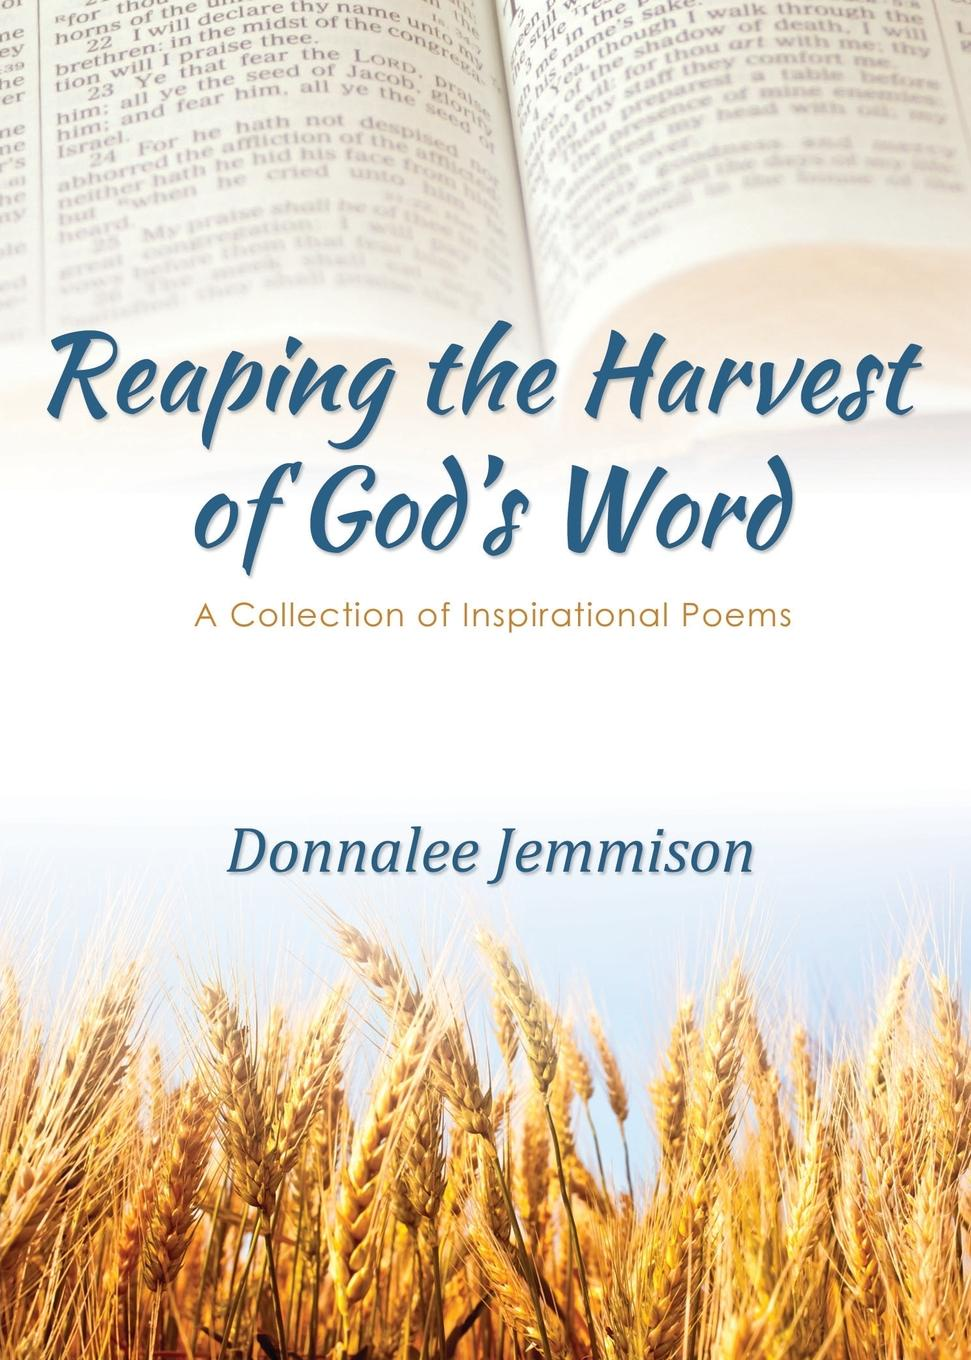 Donnalee Jemmison Reaping the Harvest of God's Word. A Collection of Inspirational Poems burke o long planting and reaping albright politics ideology and interpreting the bible